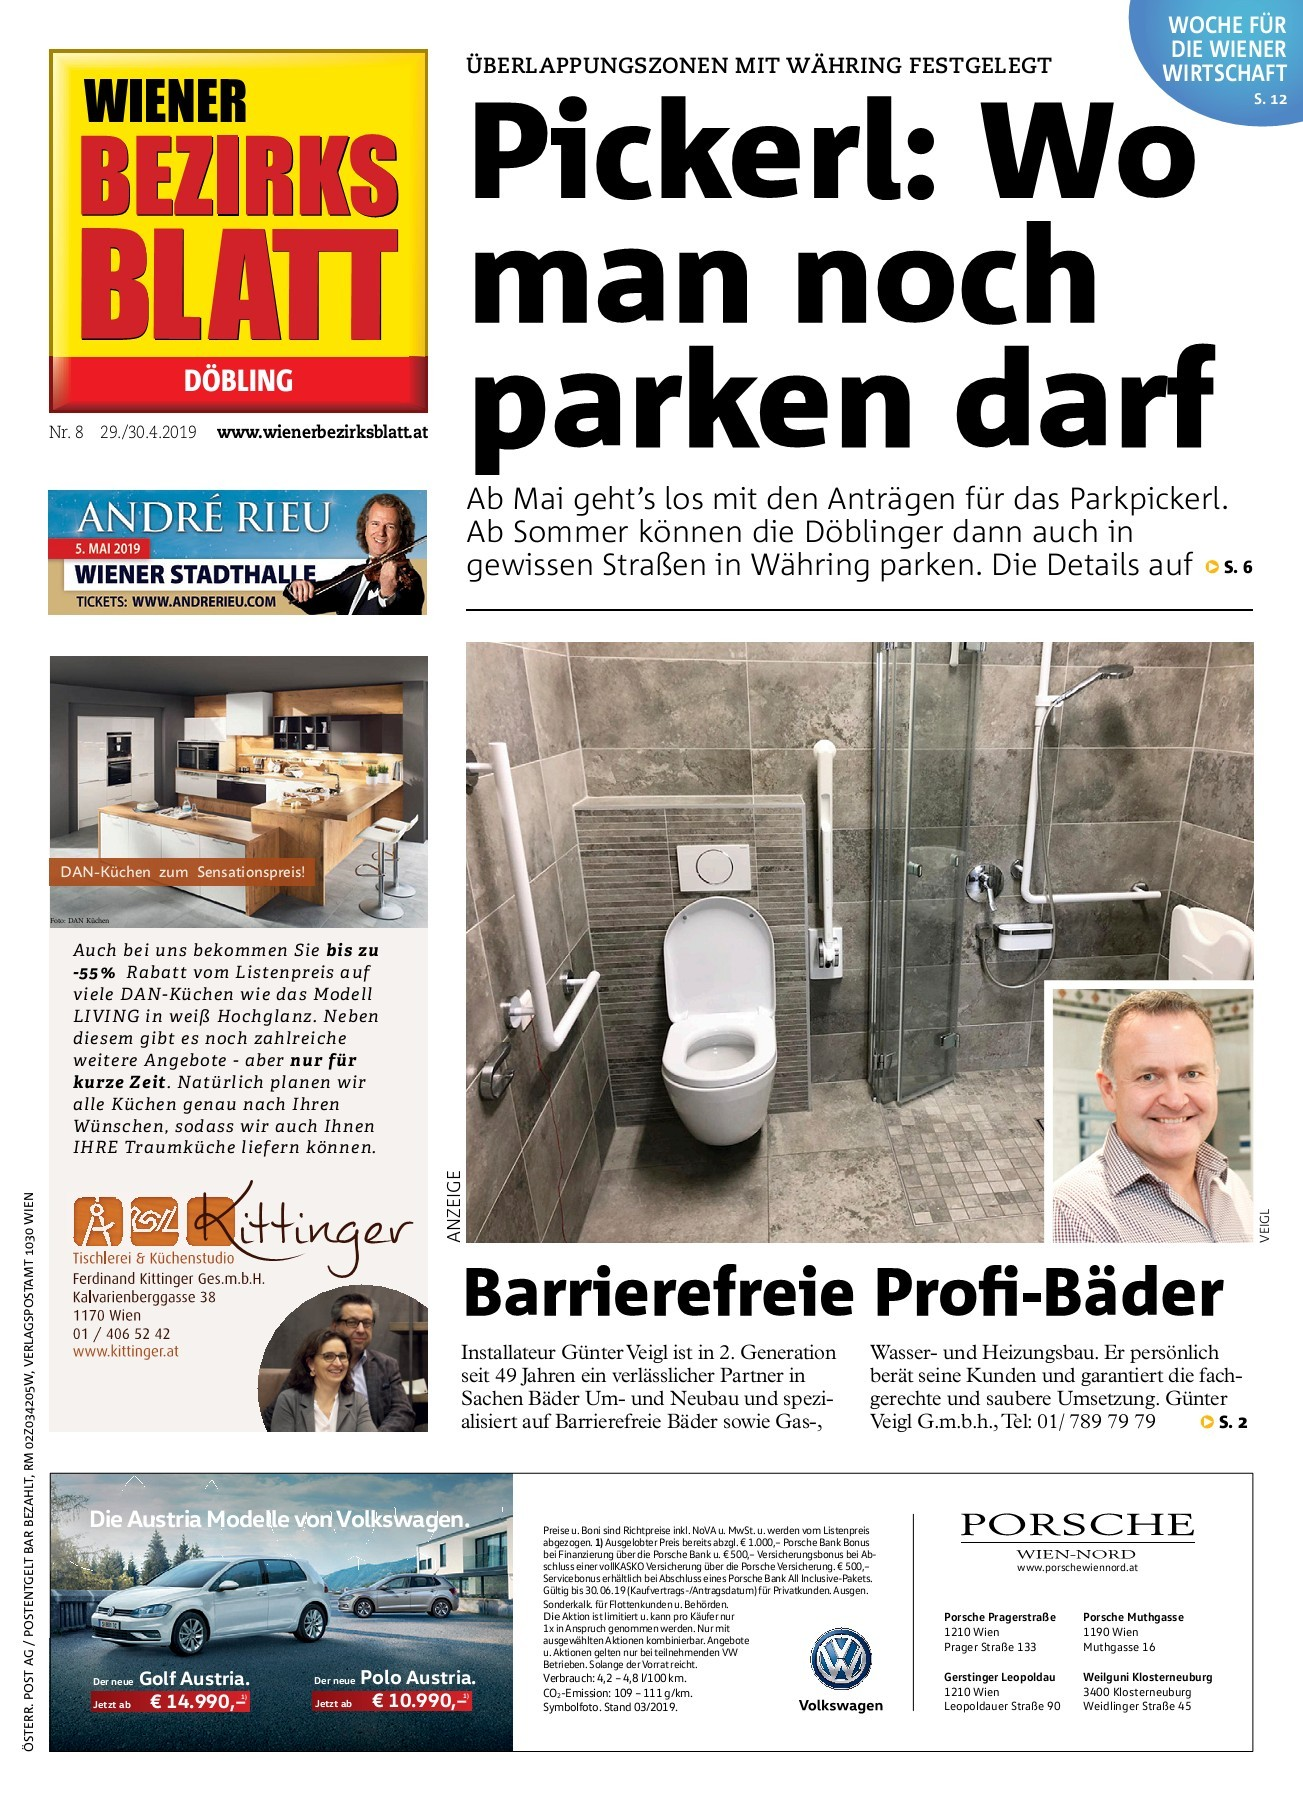 Küchen Aktuell Fürhoff Wbb 08 2019 19 Pages 1 50 Text Version Fliphtml5